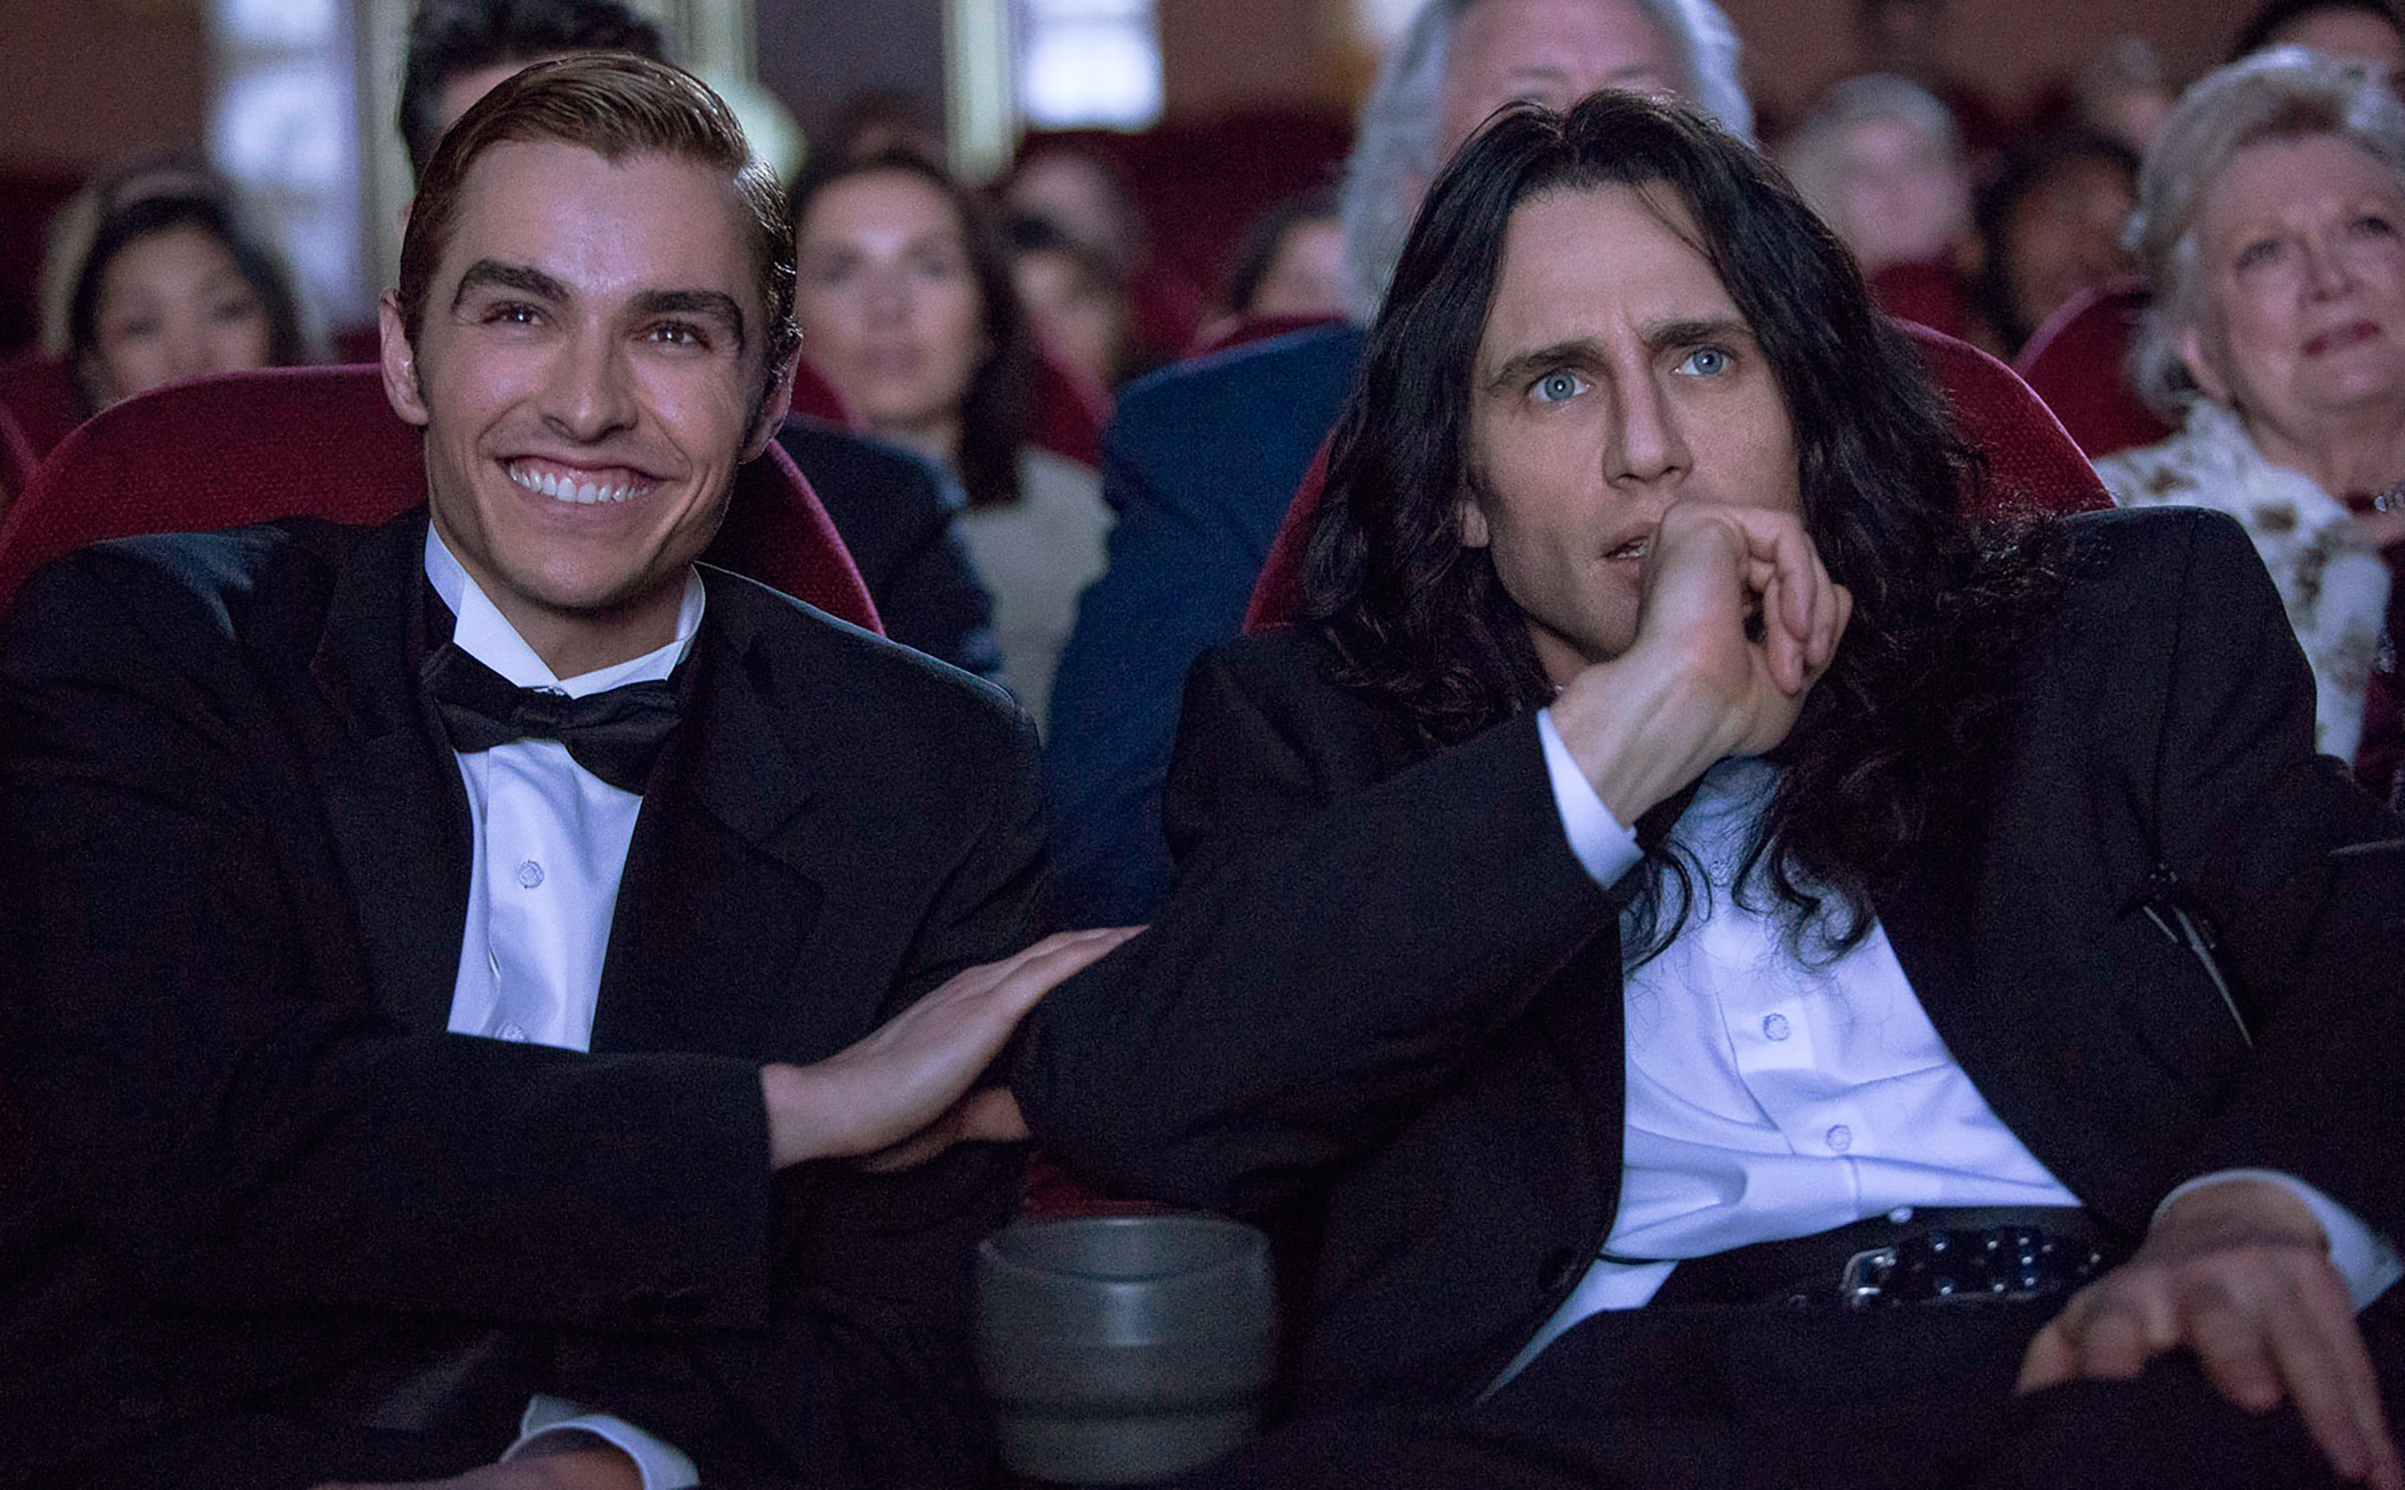 Dave, left, and James stocked the movie with an impressive number of comedy cameos from people like Zac Efron and Judd Apatow